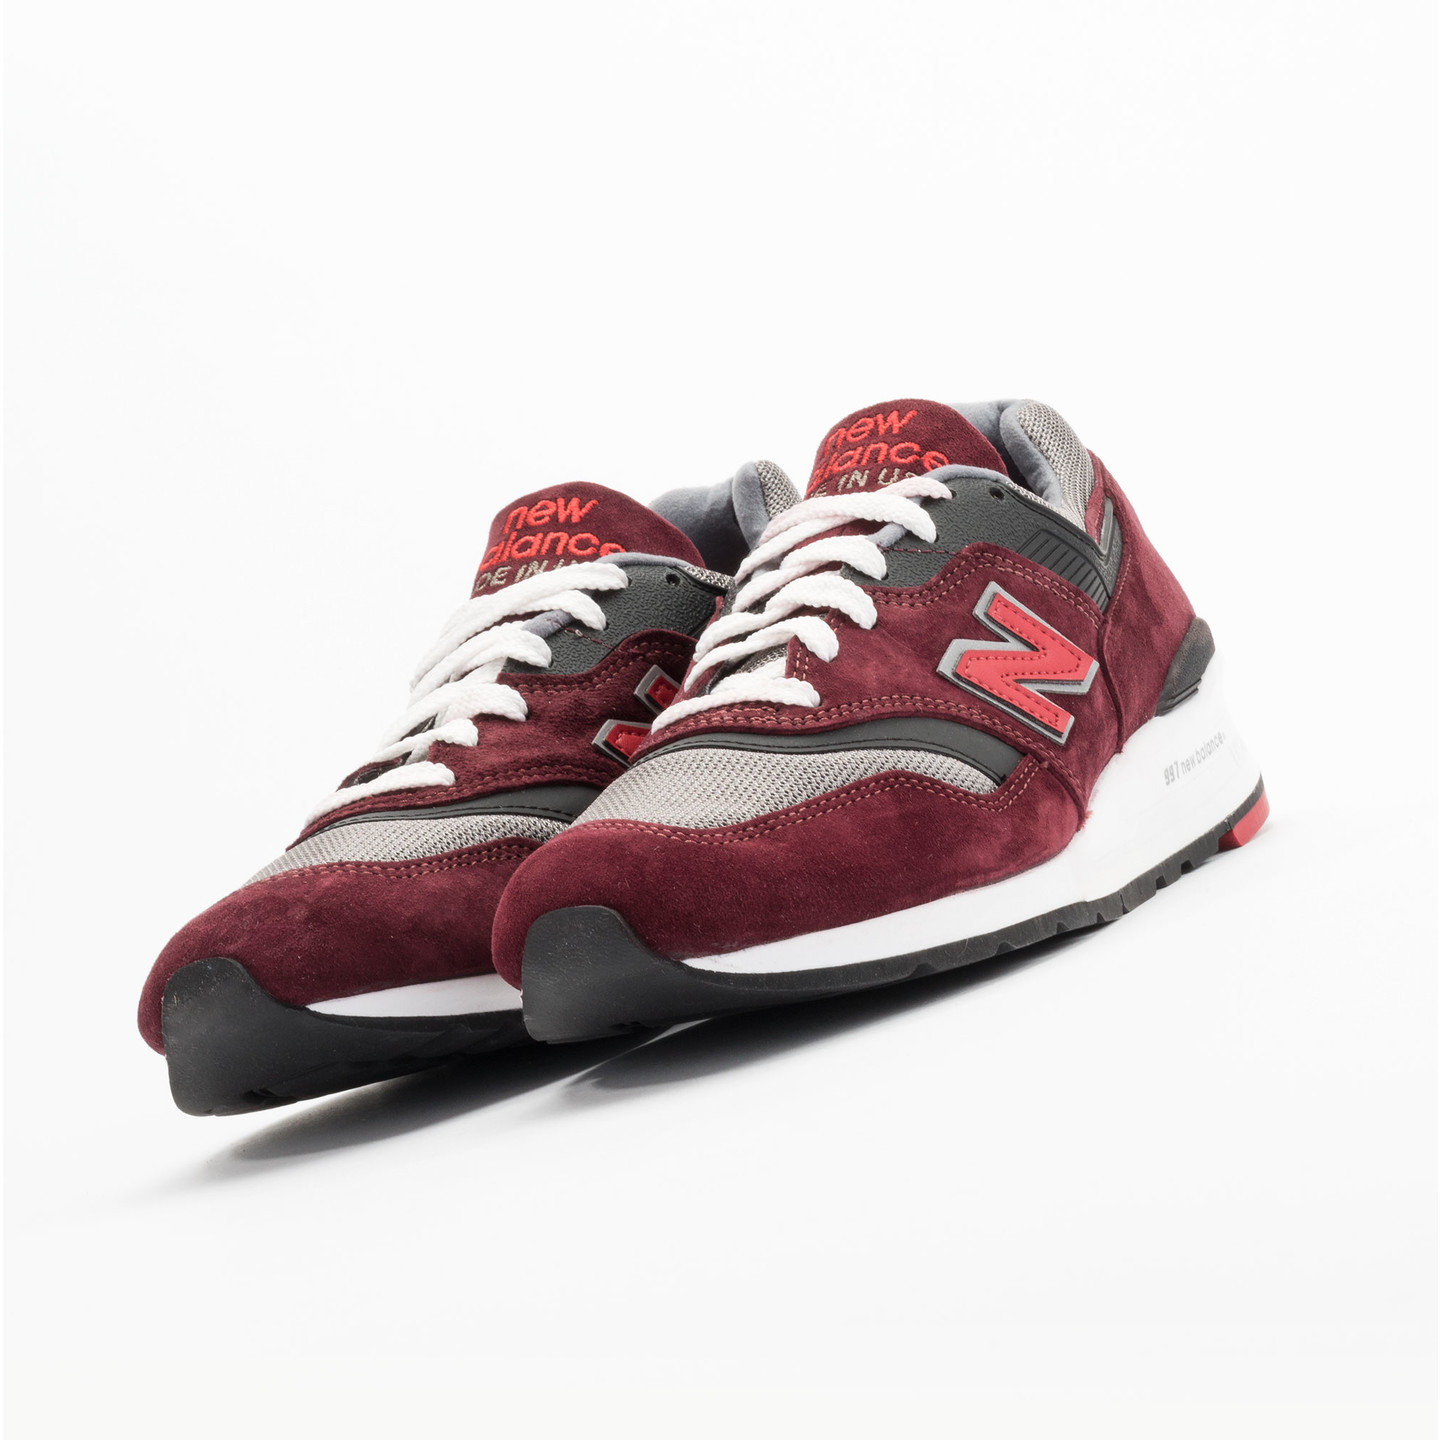 New Balance M997 CRG - Made in USA Brick Red / Black / Grey M997CRG-44.5